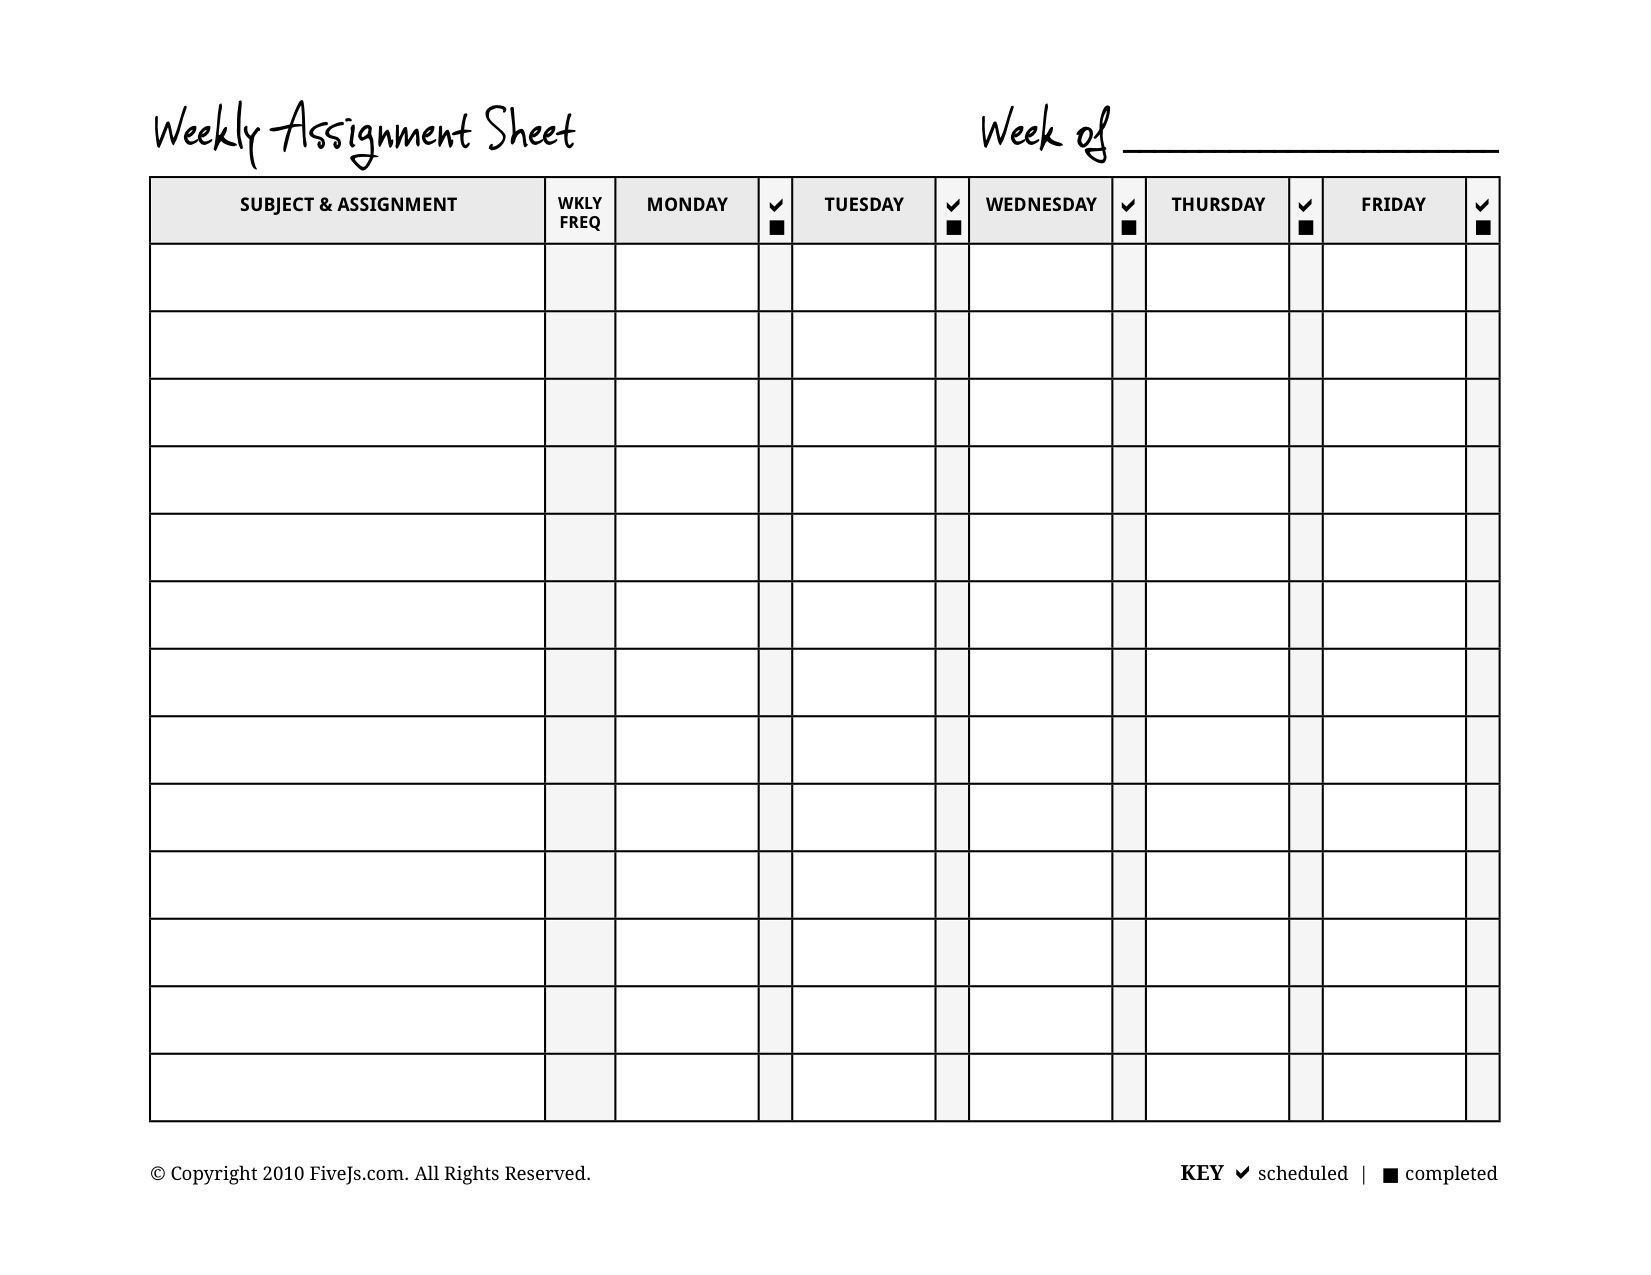 Homeschool Weekly Assignment Planner | Assignment Planner  Weekly Assignment Log